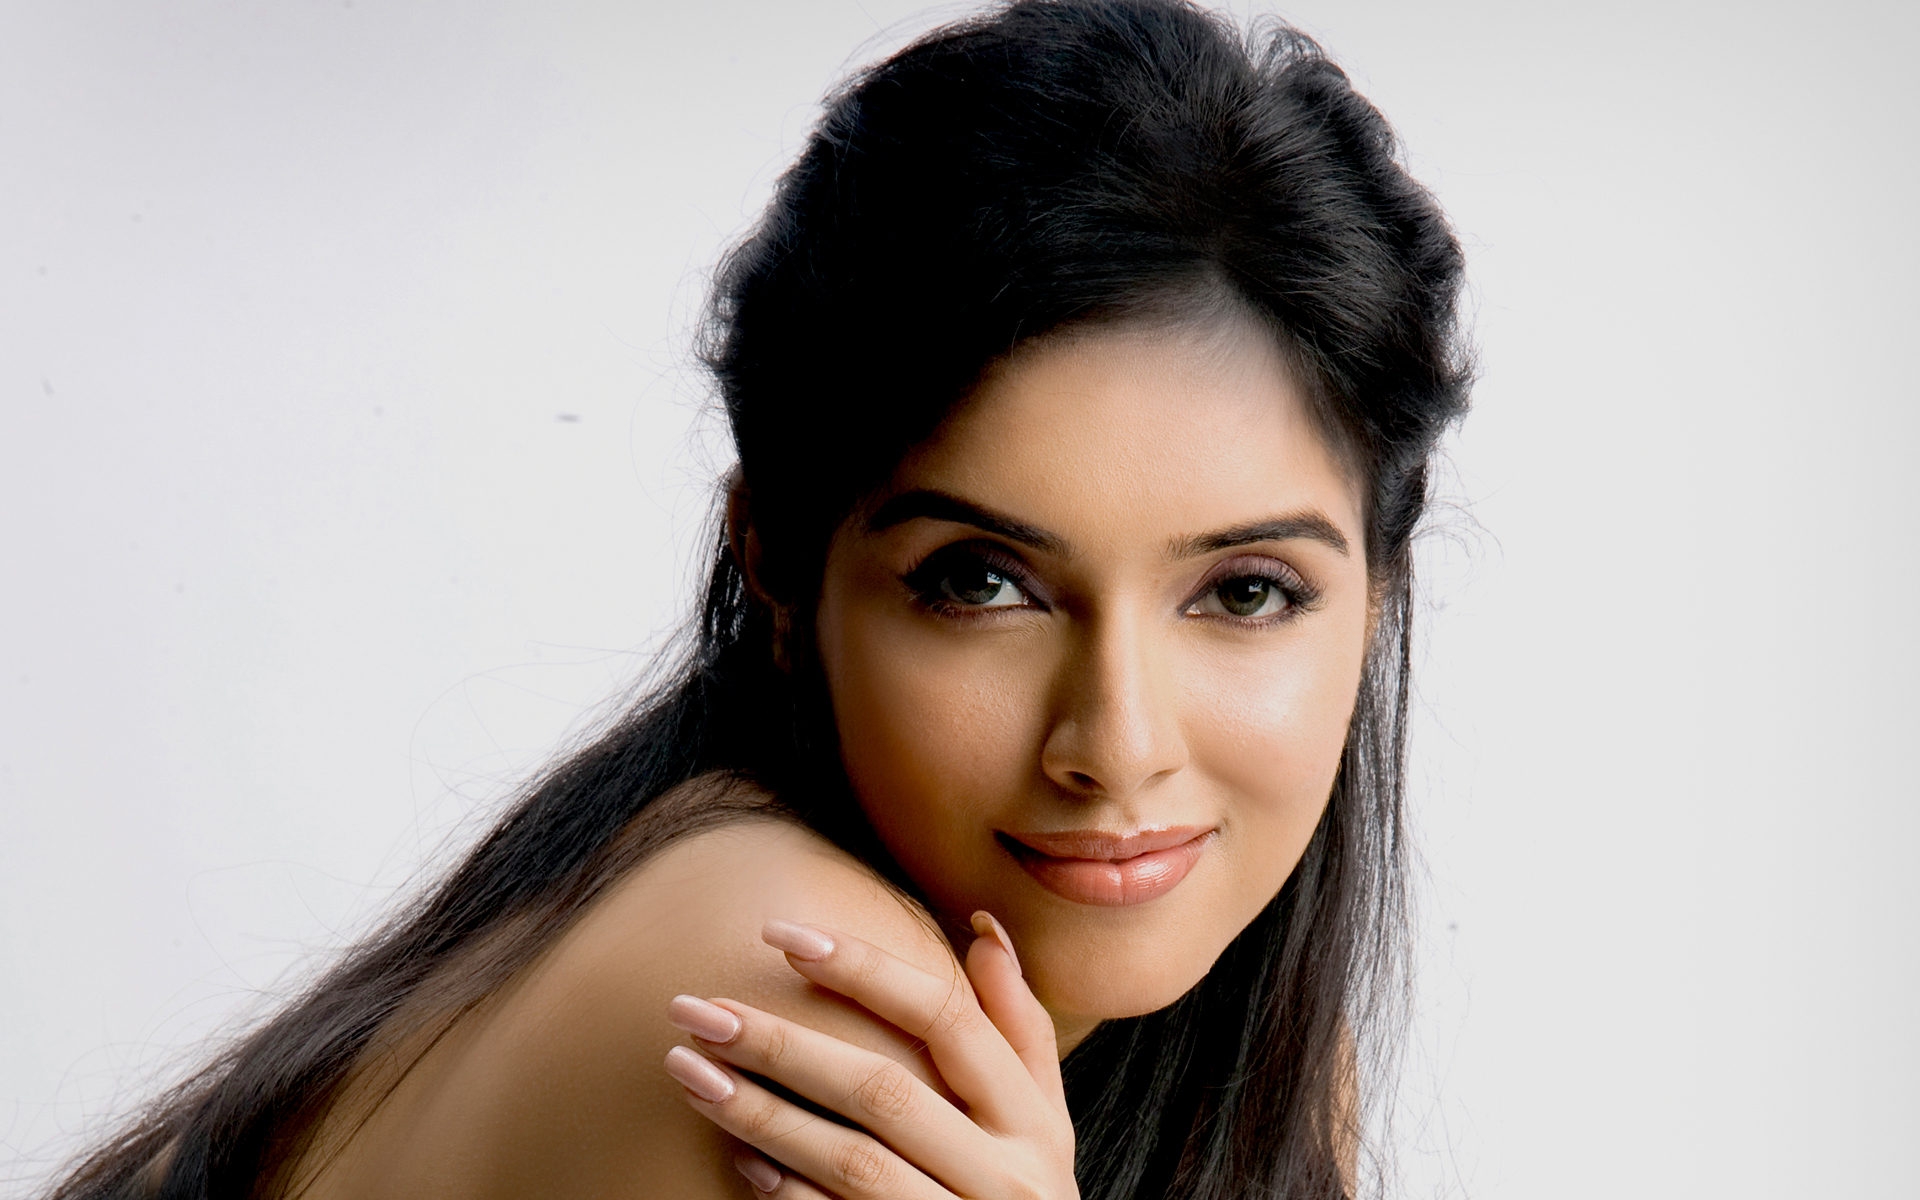 asin wallpapers 1920x1200 1207180 bhmpics com